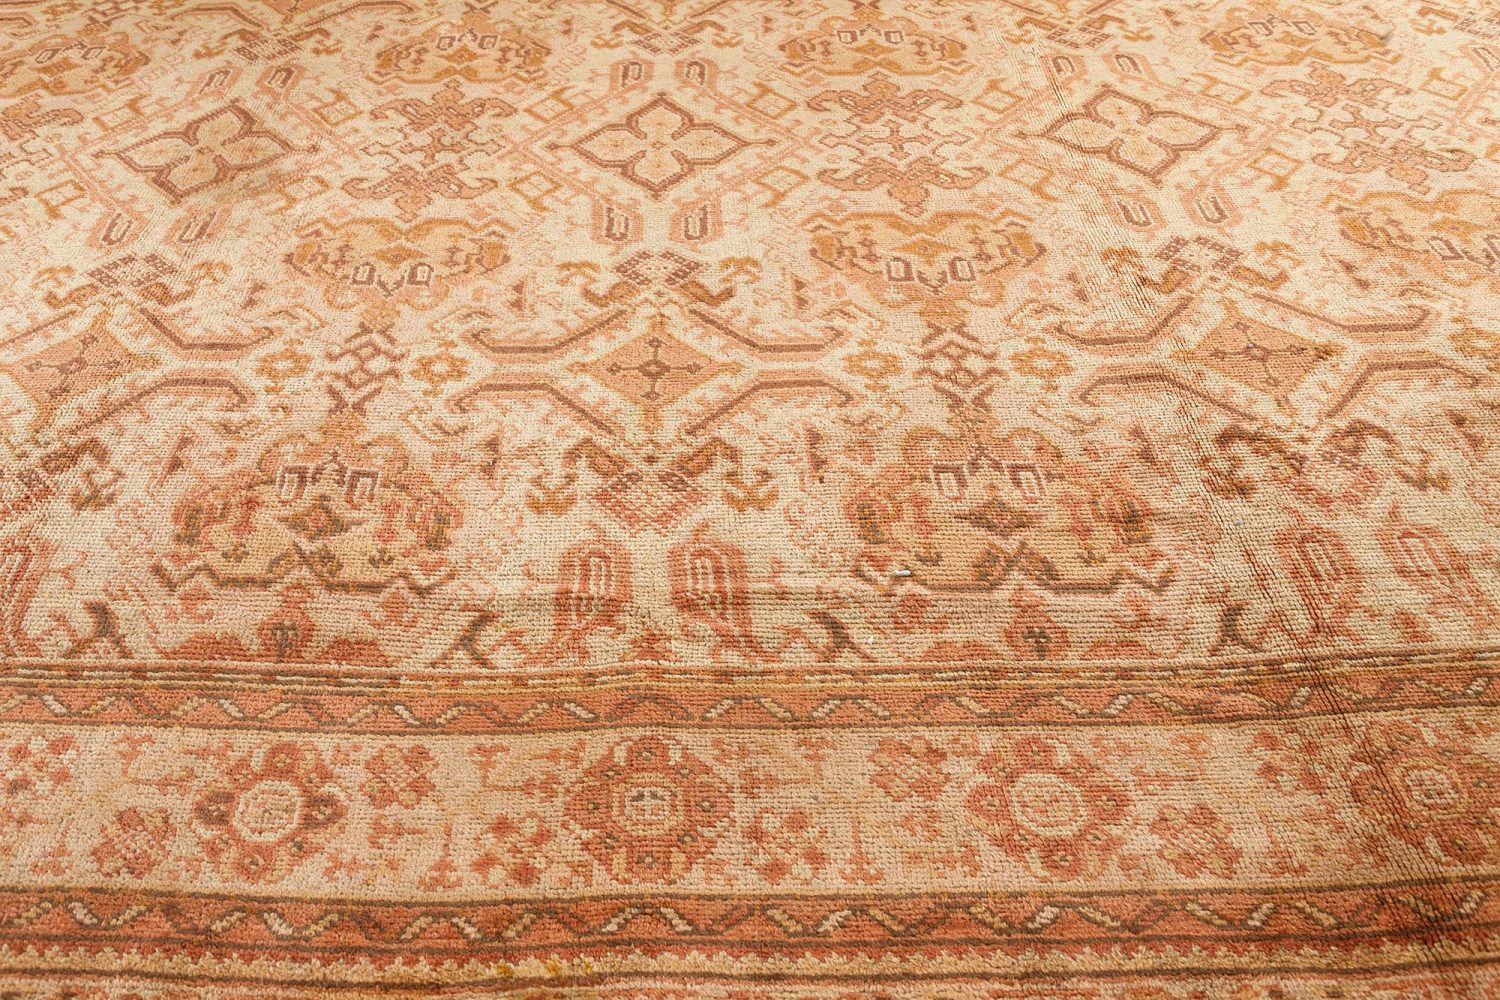 Oversized Vintage Turkish Oushak Carpet BB7501